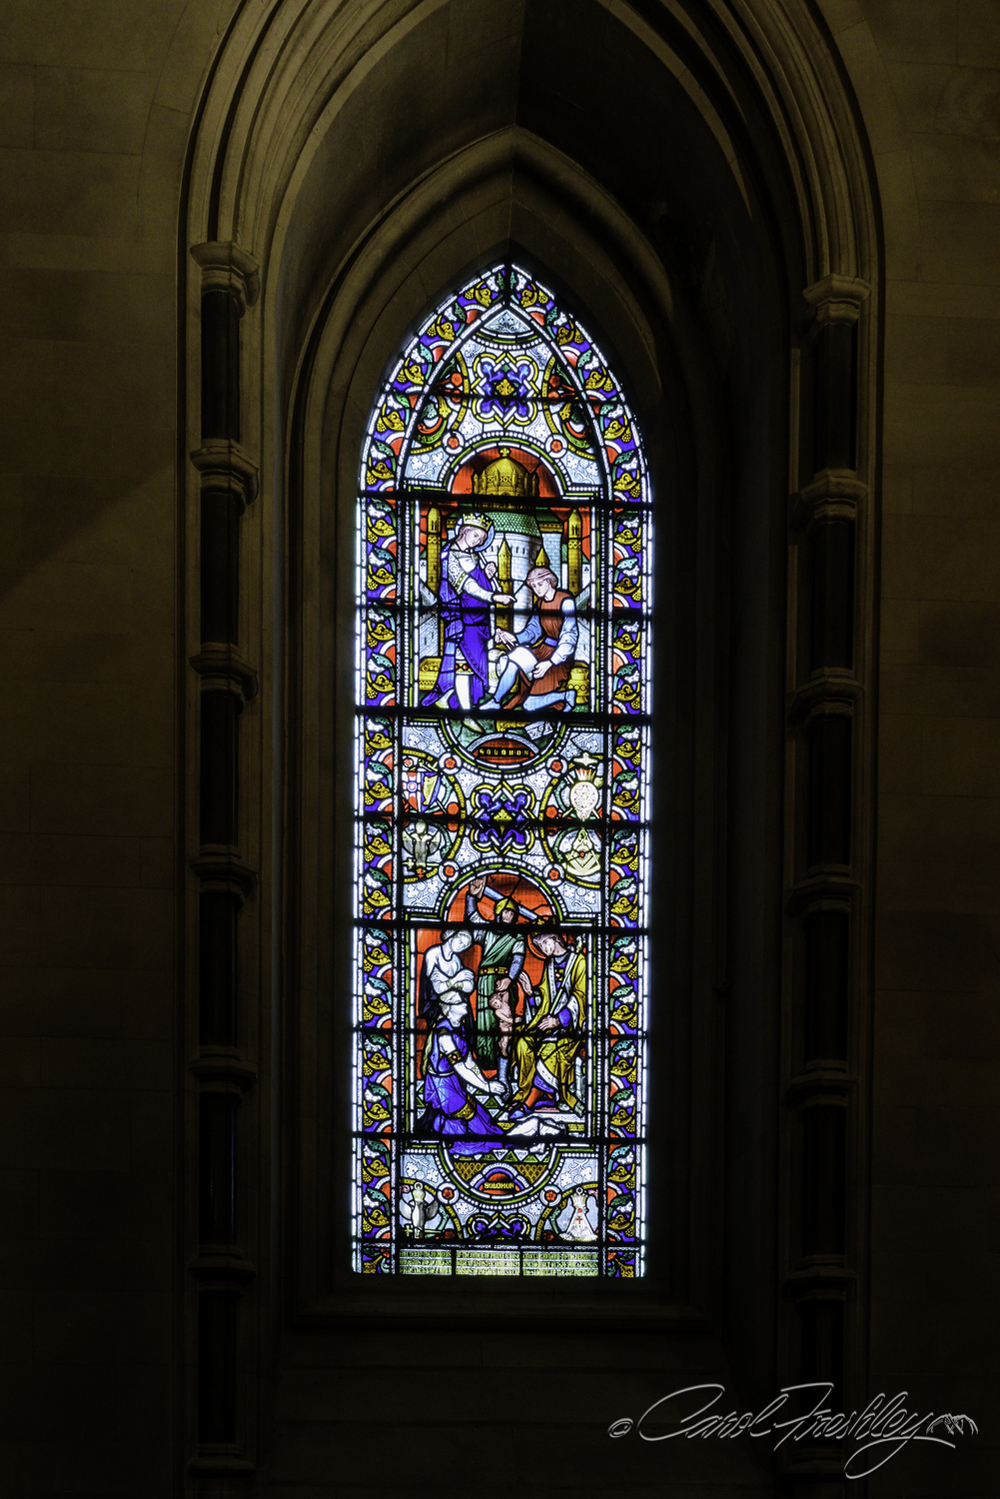 The stained glass windows were gorgeously detailed. Unfortunately, protective screens have been placed on the outside of each one and the mesh can be seen through the window.